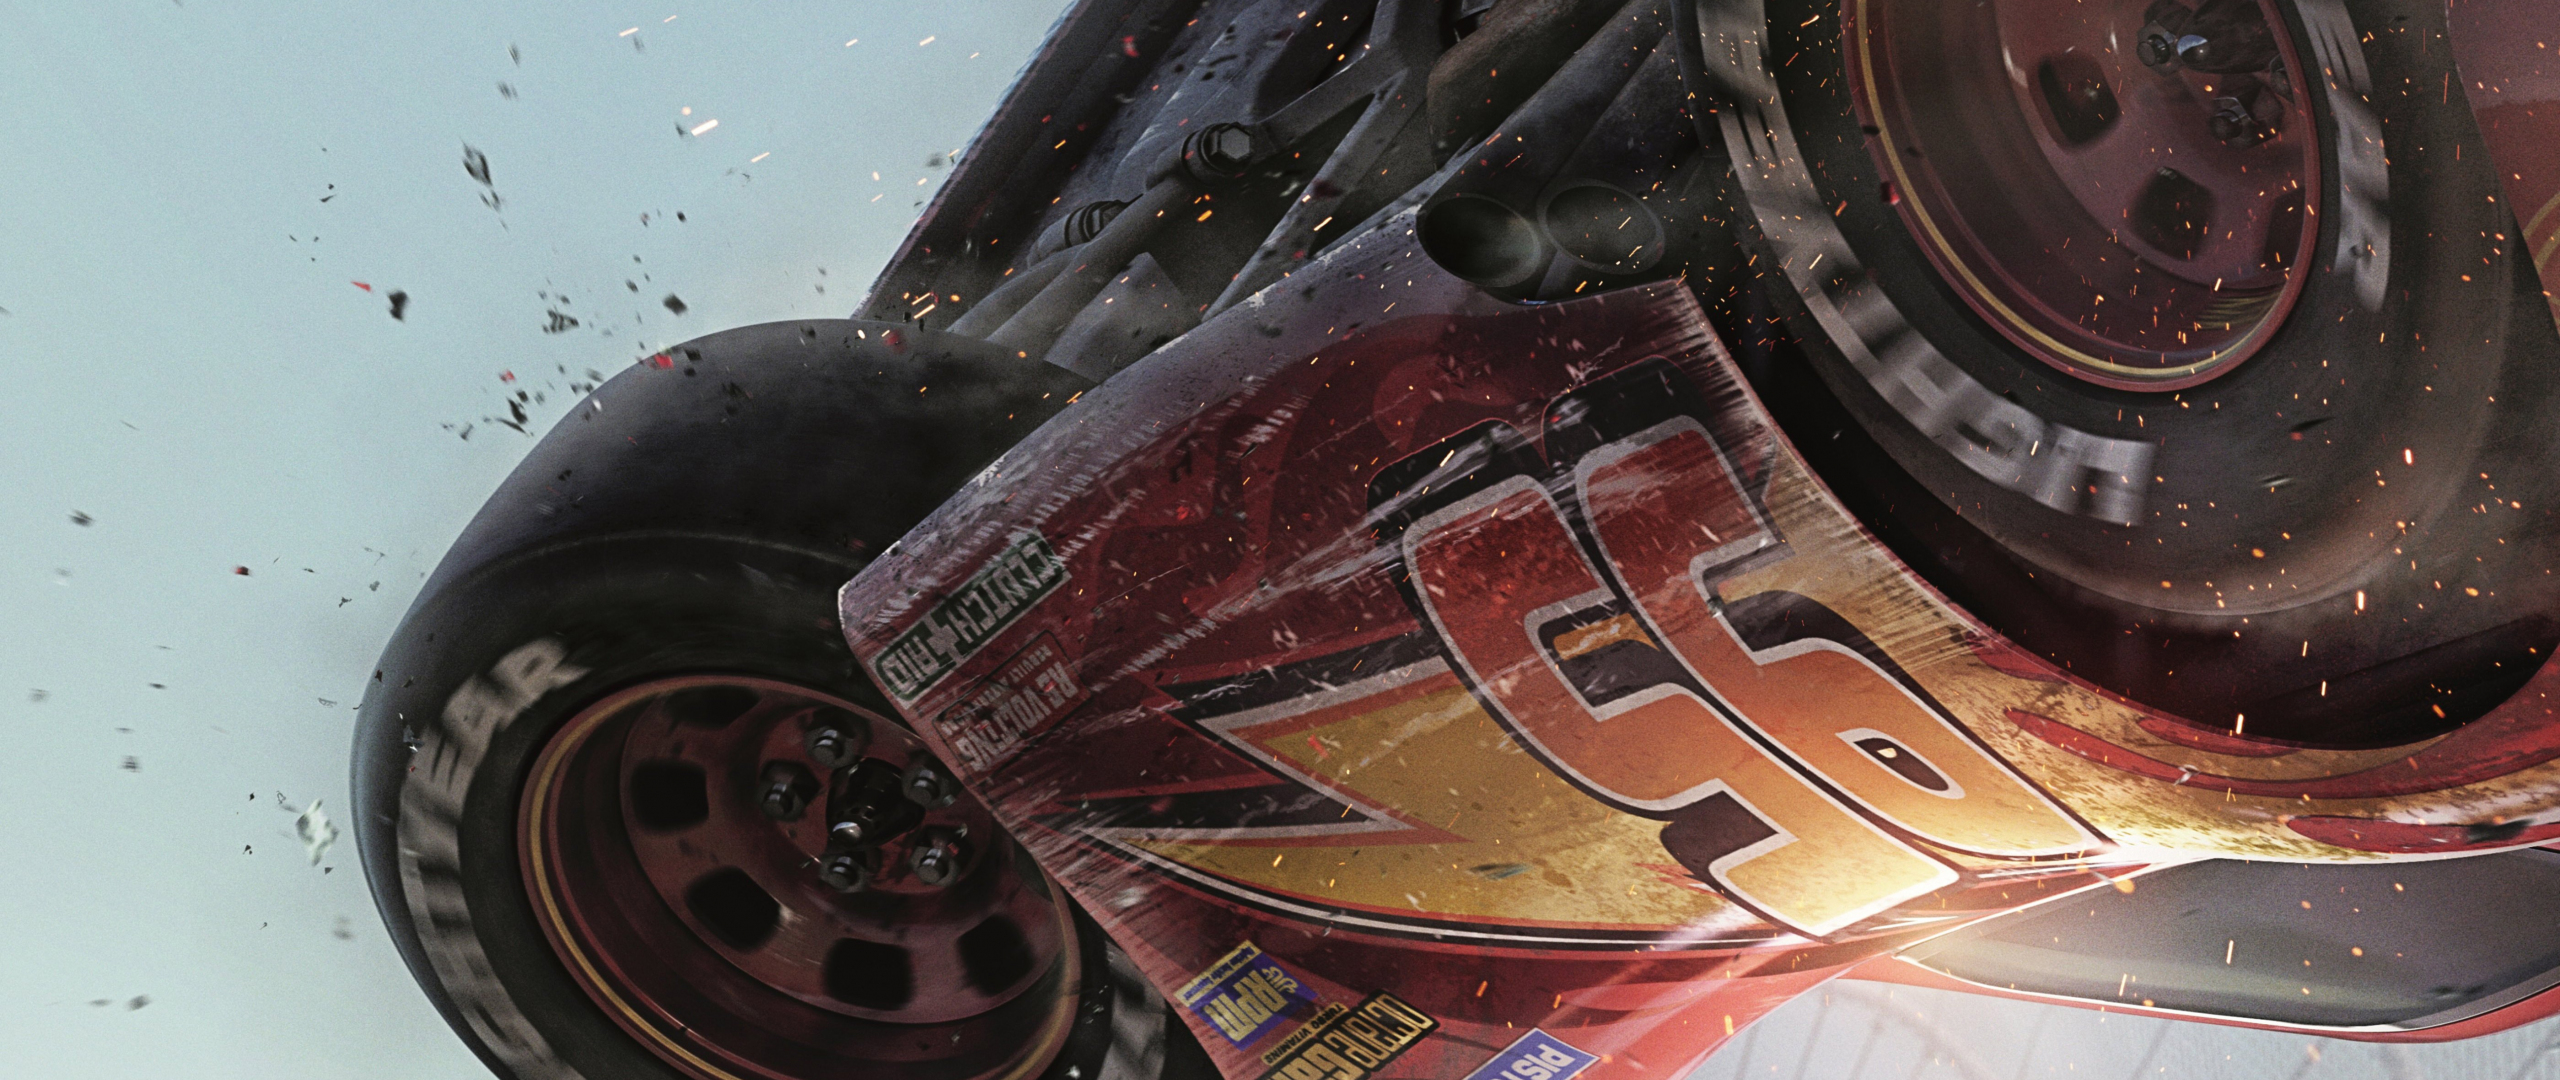 Desktop Wallpaper Cars 3 Animated Movie 2017 Movie Lightning Mc Queen Hd Image Picture Background Ojqyyu